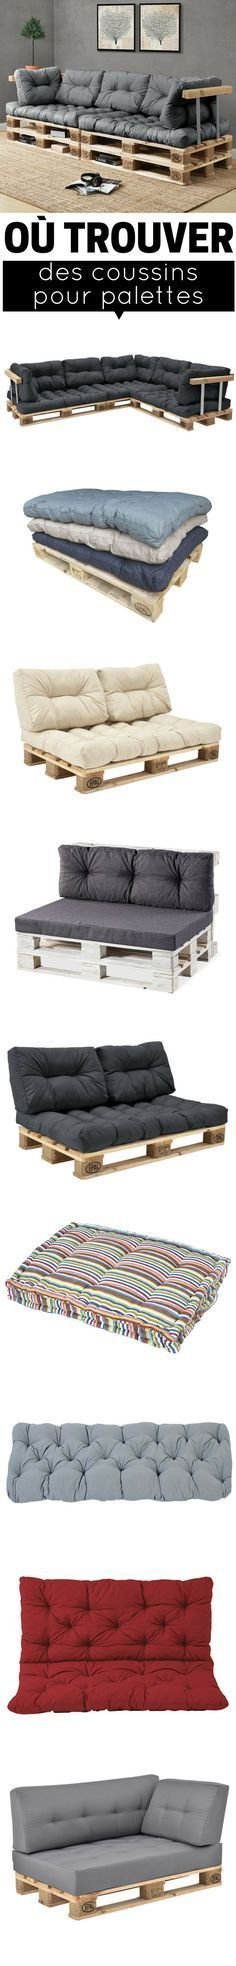 le fauteuil en palette est le favori incontest pour la. Black Bedroom Furniture Sets. Home Design Ideas